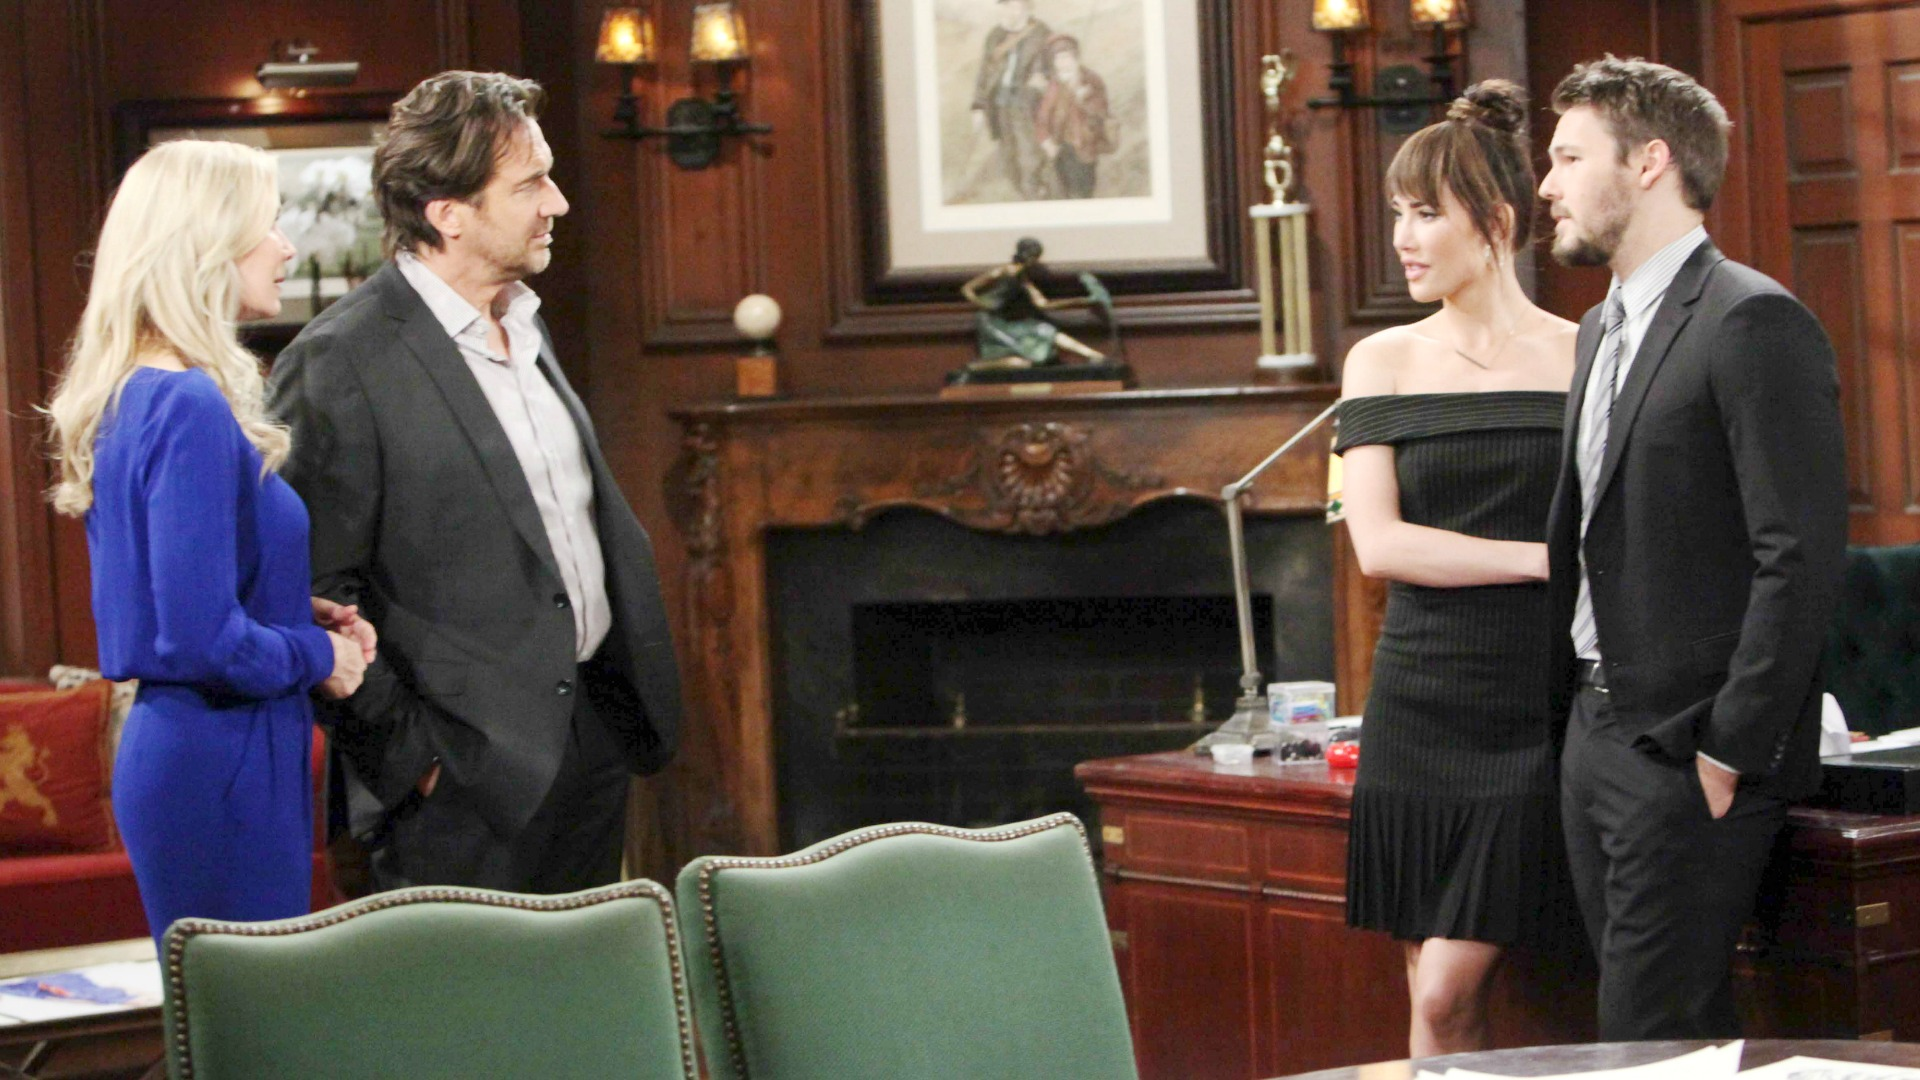 Steffy and Liam make a big announcement to their friends and family about their destination wedding.